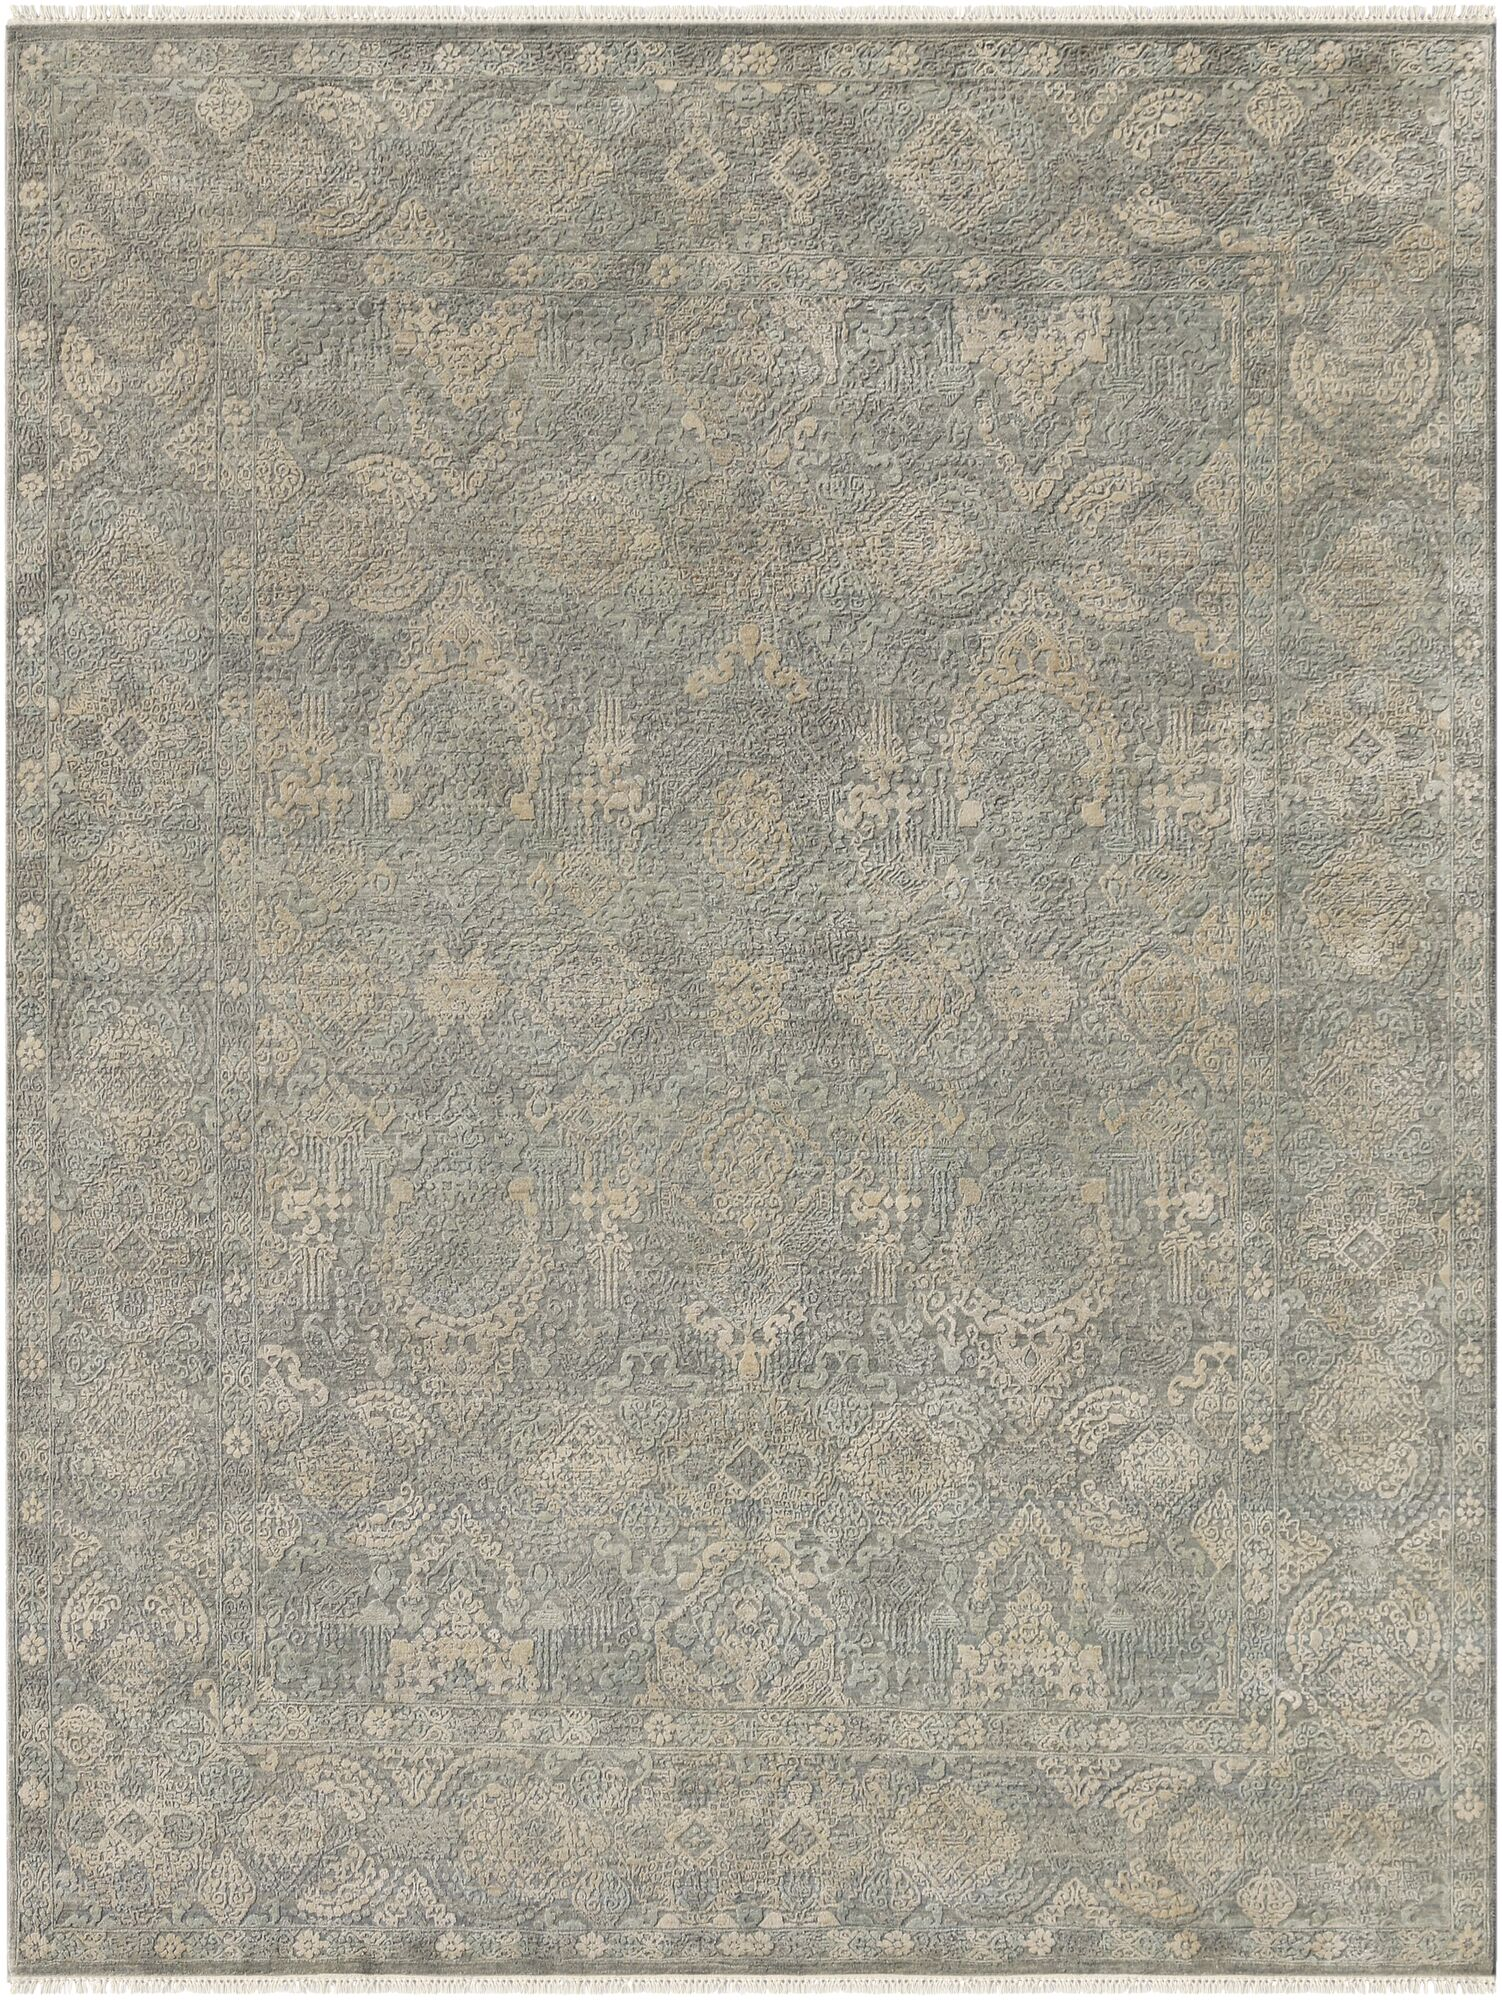 Gerhardine Hand Knotted Sage/Light Gray Area Rug Rug Size: 8' x 10'